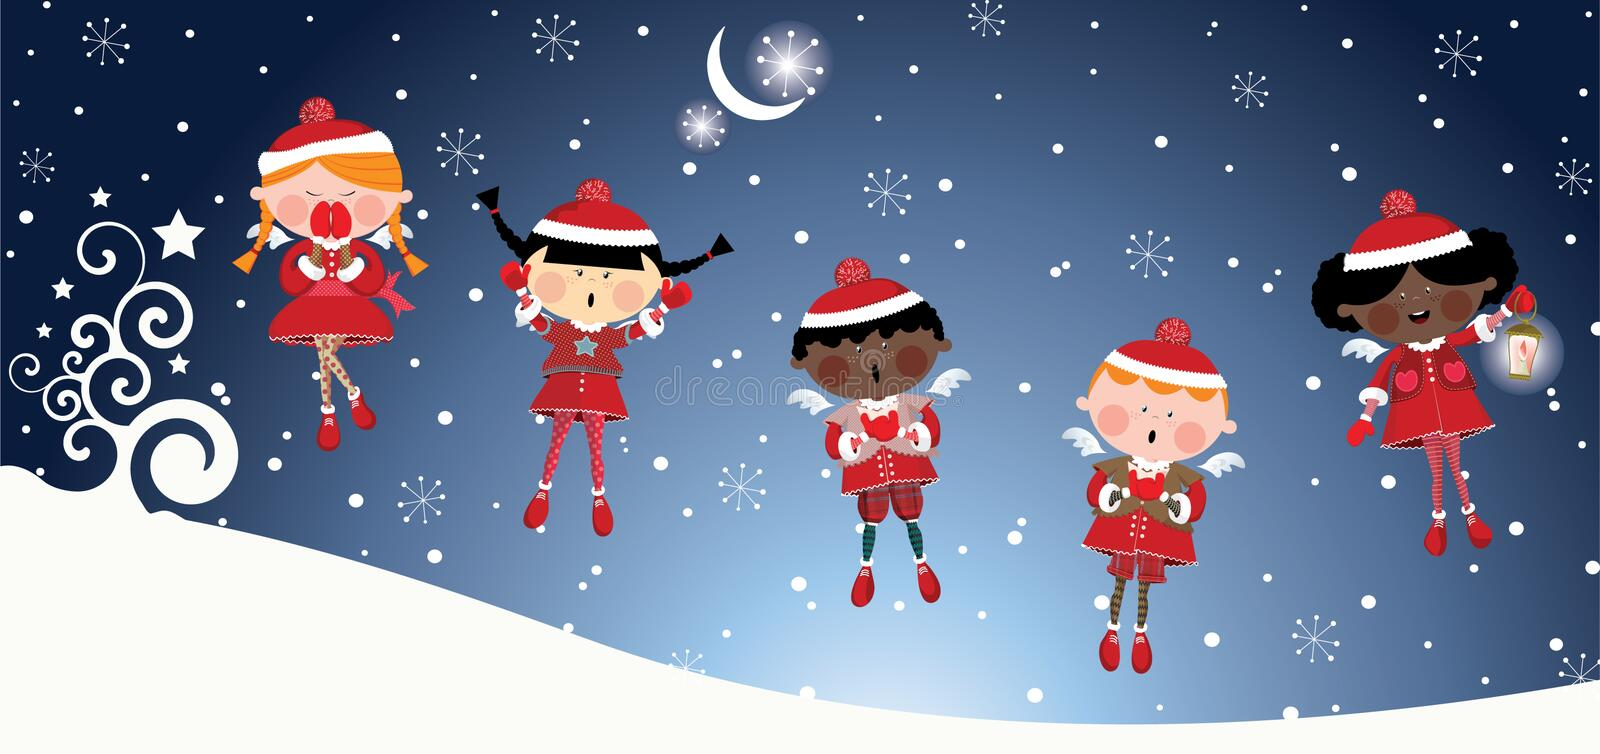 Christmas angels royalty free illustration